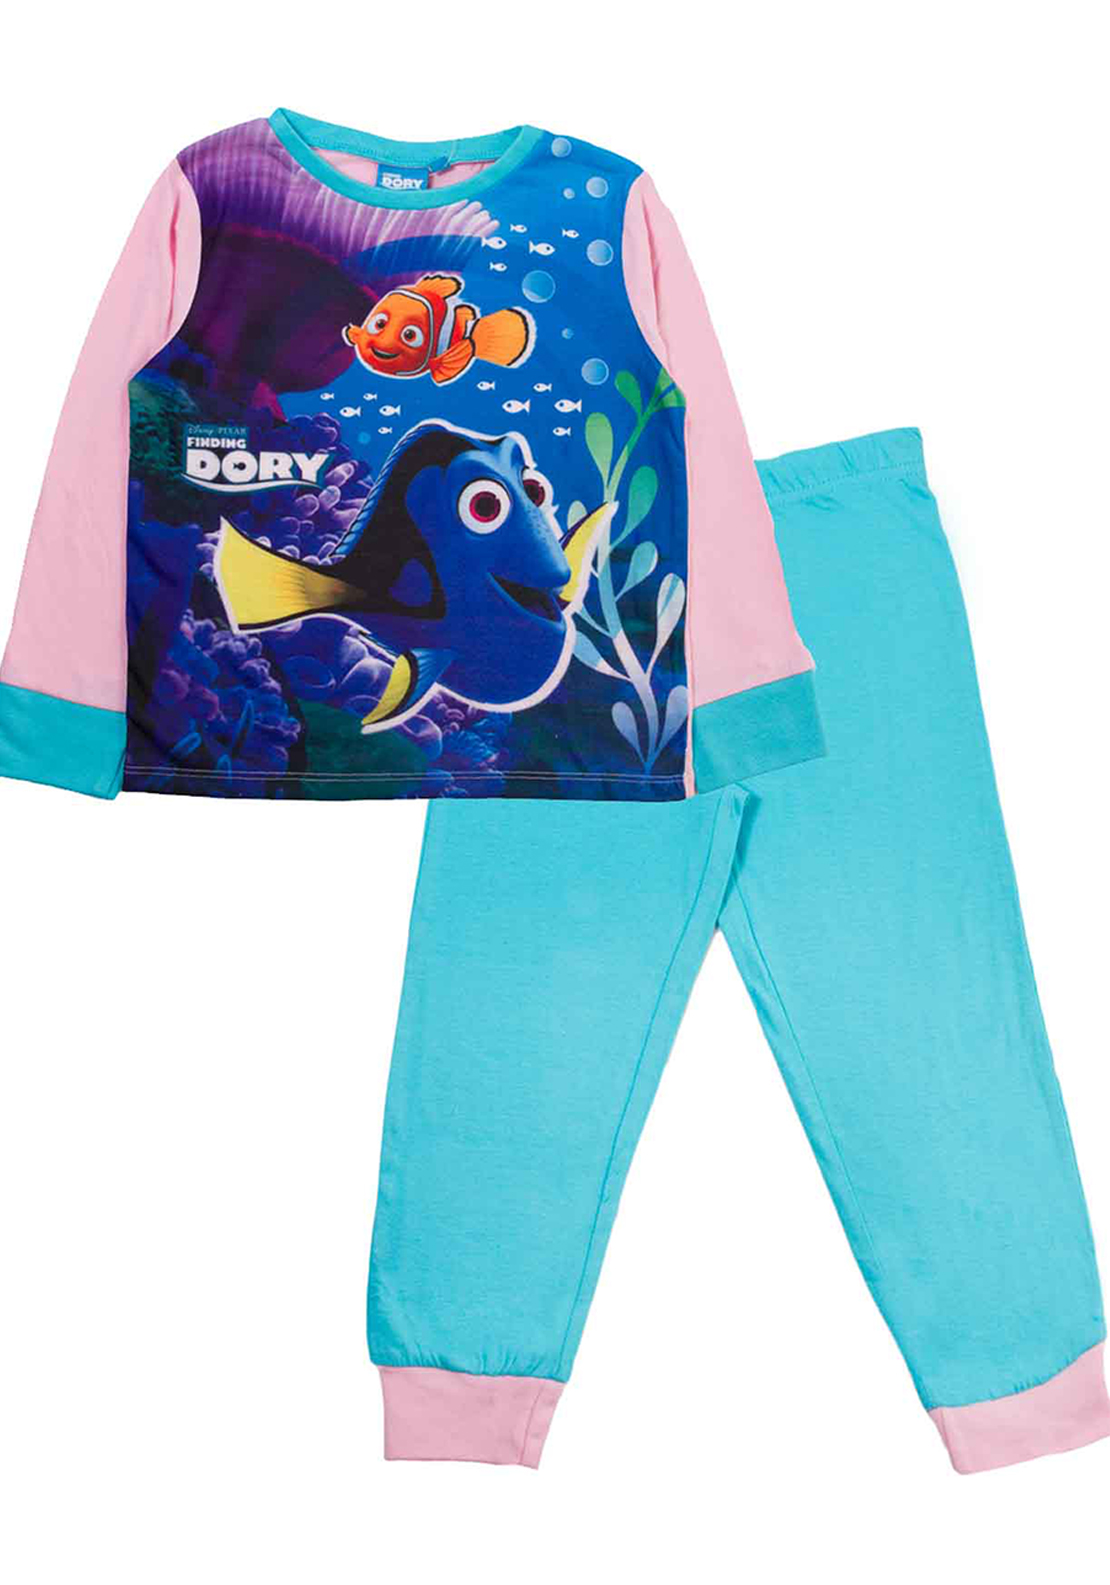 Finding Dory Girls Pyjamas, Multi-Coloured